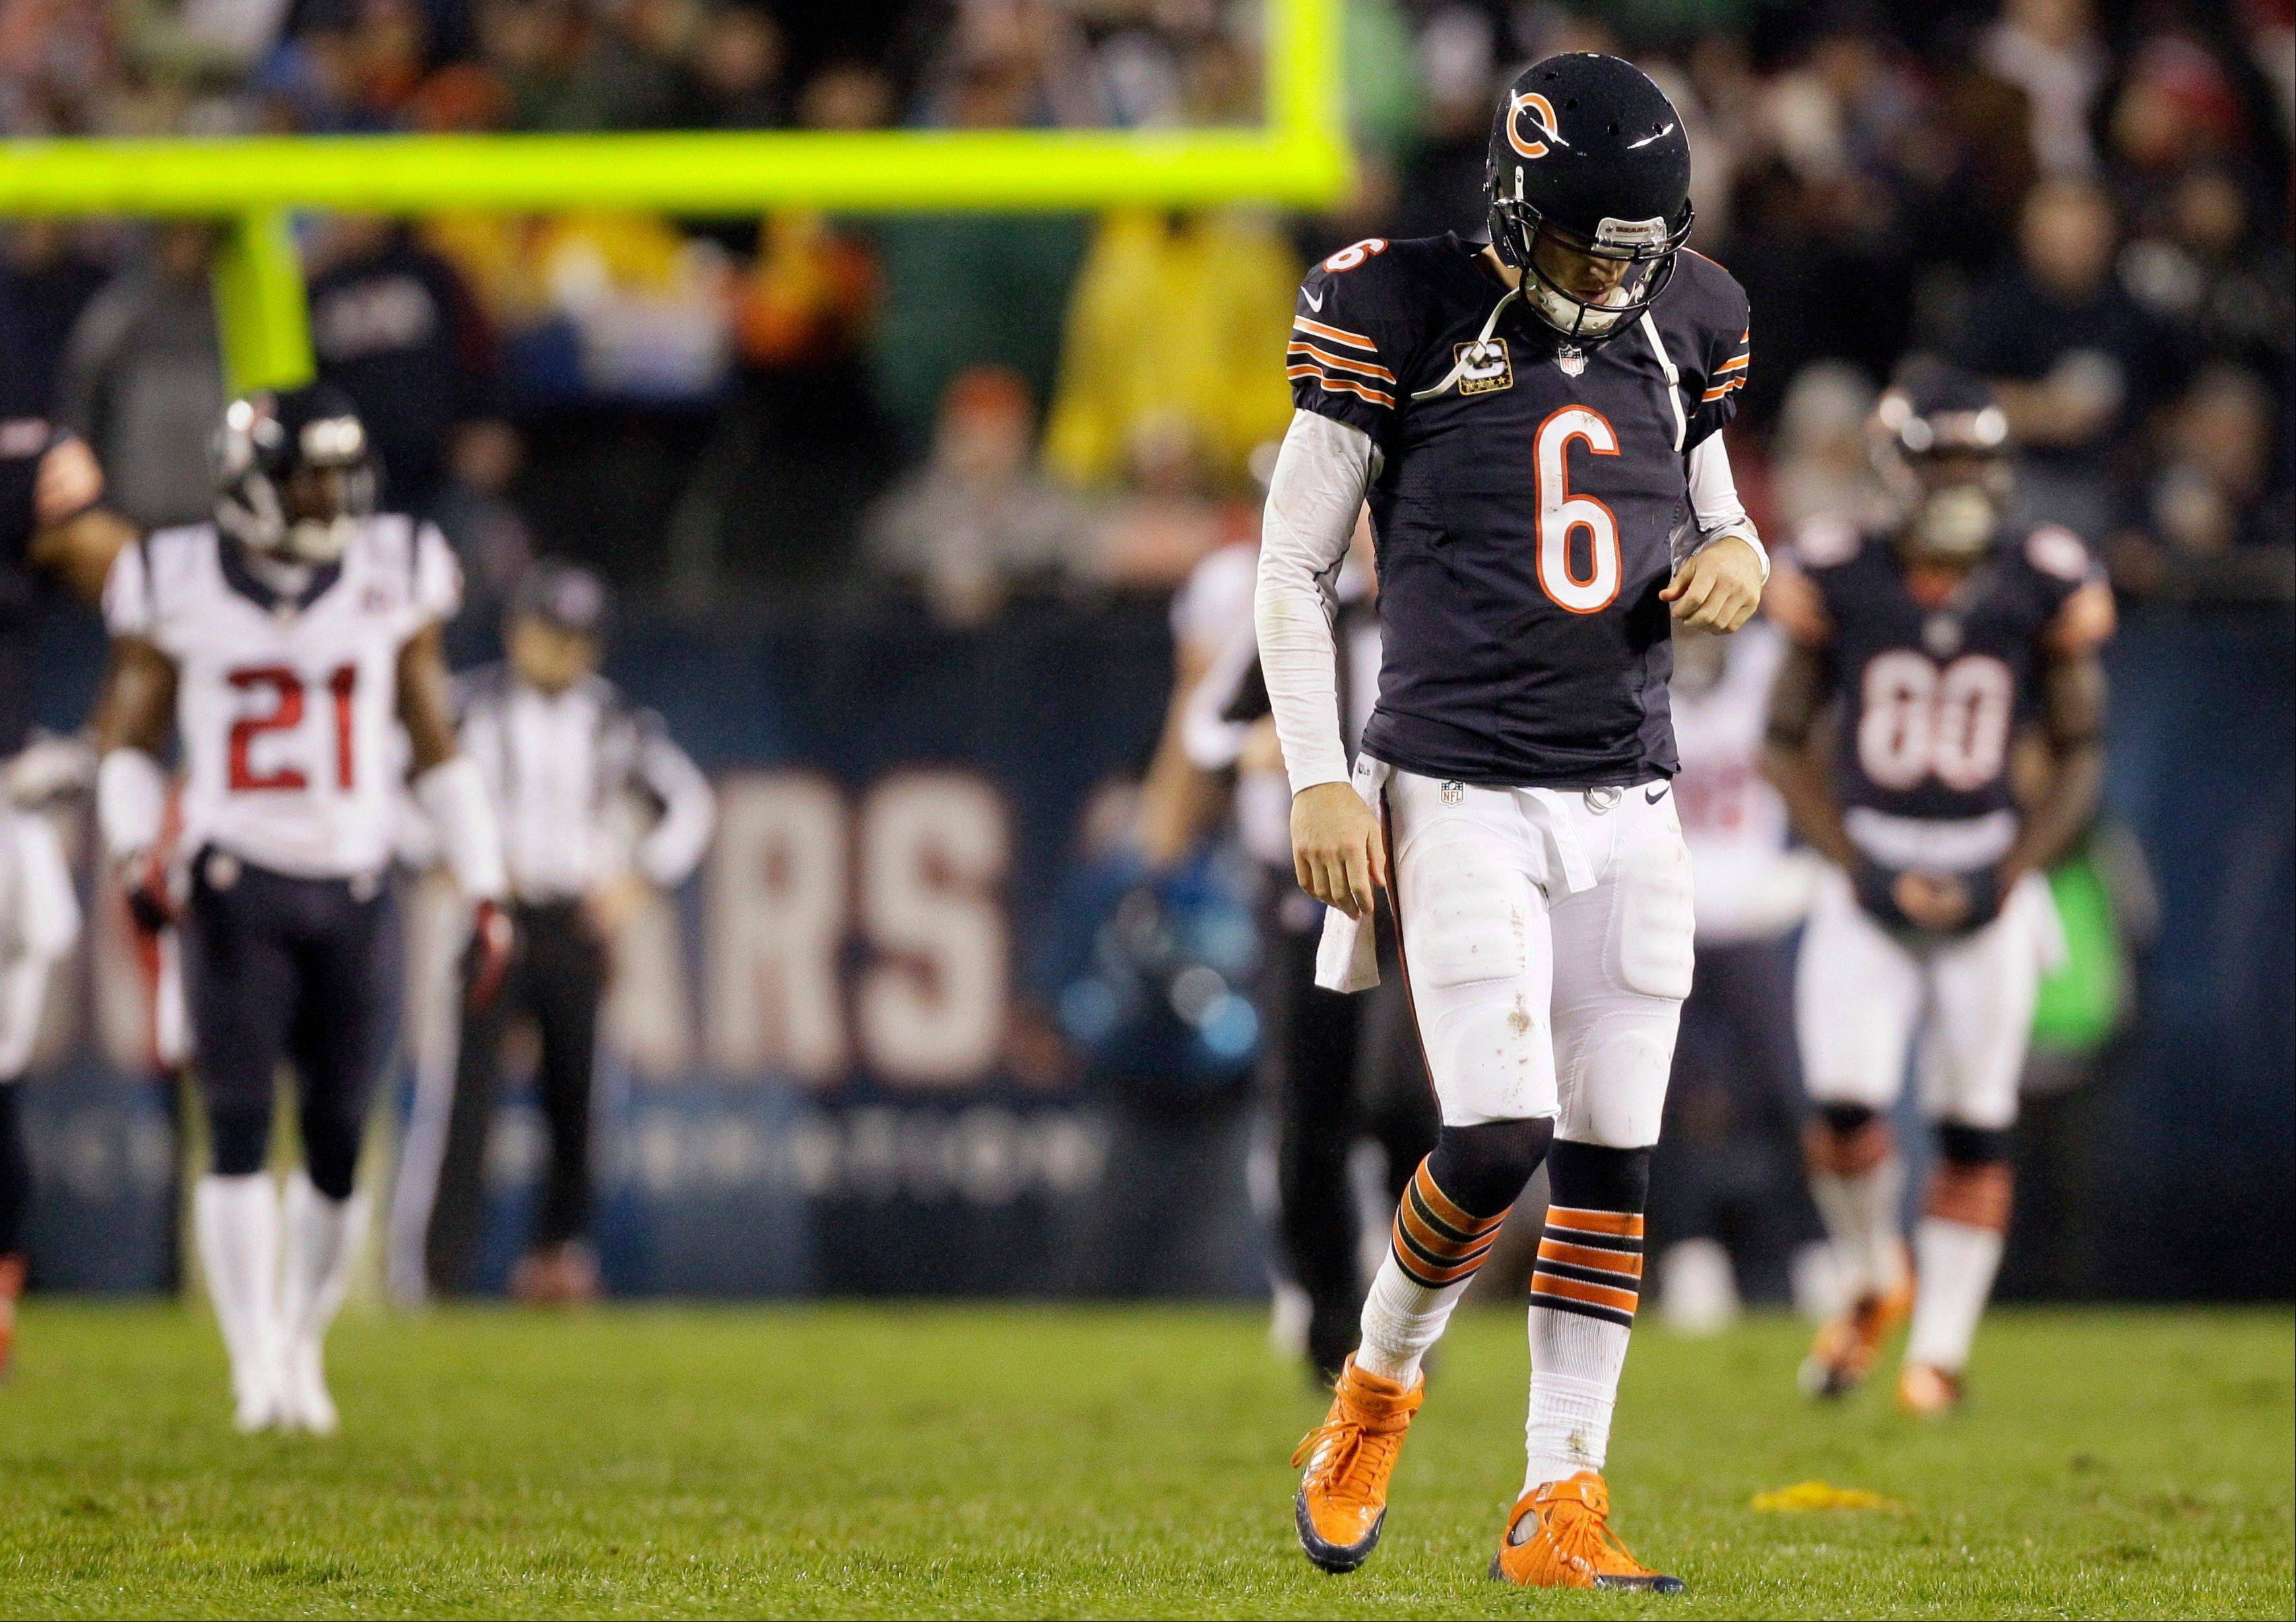 Bears quarterback Jay Cutler walks off the field Sunday after he threw an illegal forward pass and took a late hit by Houston Texans linebacker Tim Dobbins in the first half.